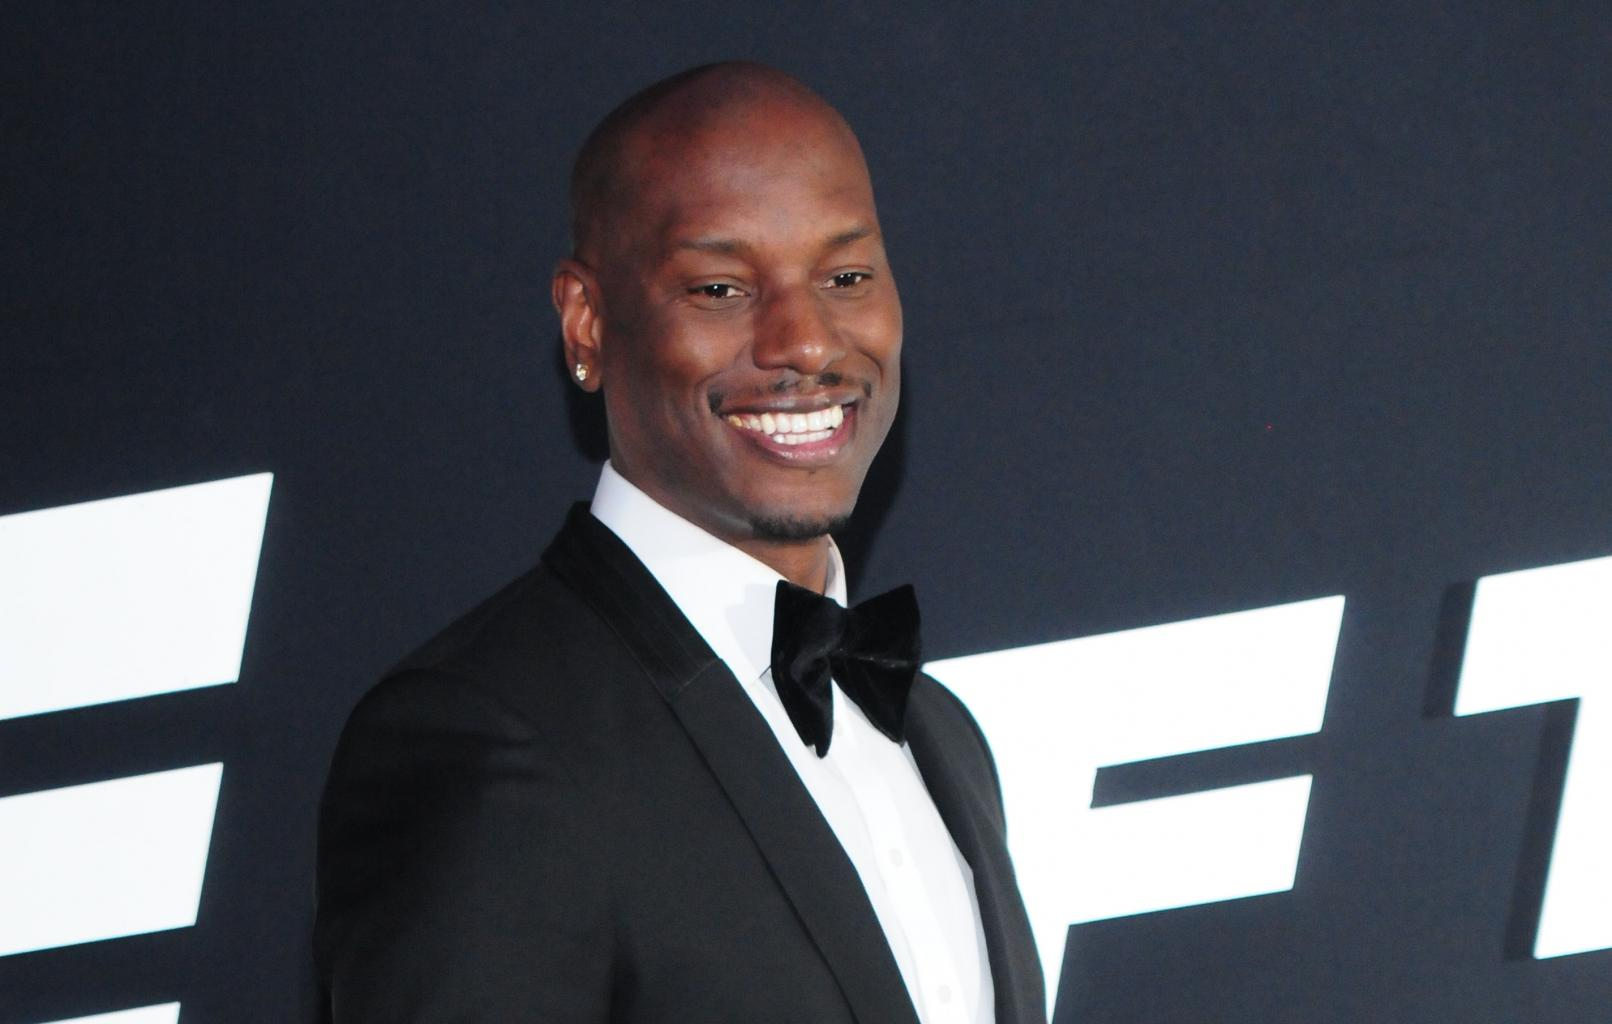 Tyrese Apologizes For Comments About 'Promiscuous Women', Wendy Williams Weighs In: 'He Likes Men'